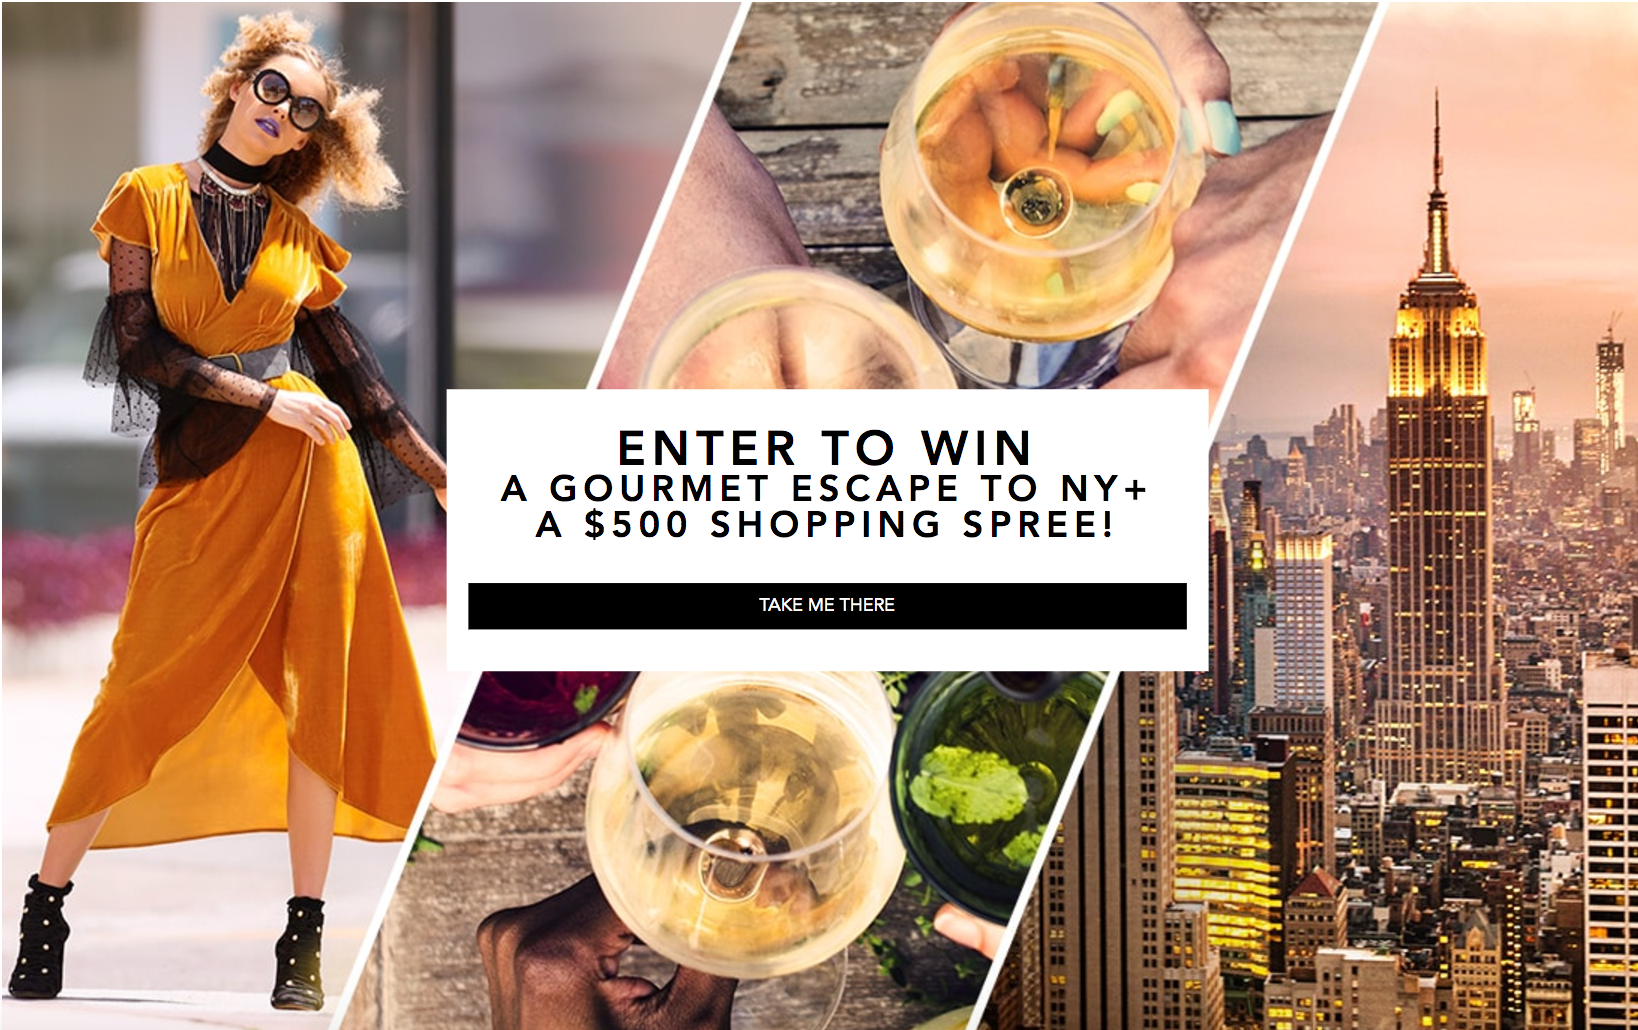 Enter for your chance to win a gourmet Escape to NYC and a $500 Shopping Spree to Boston Proper for a new vacation wardrobe